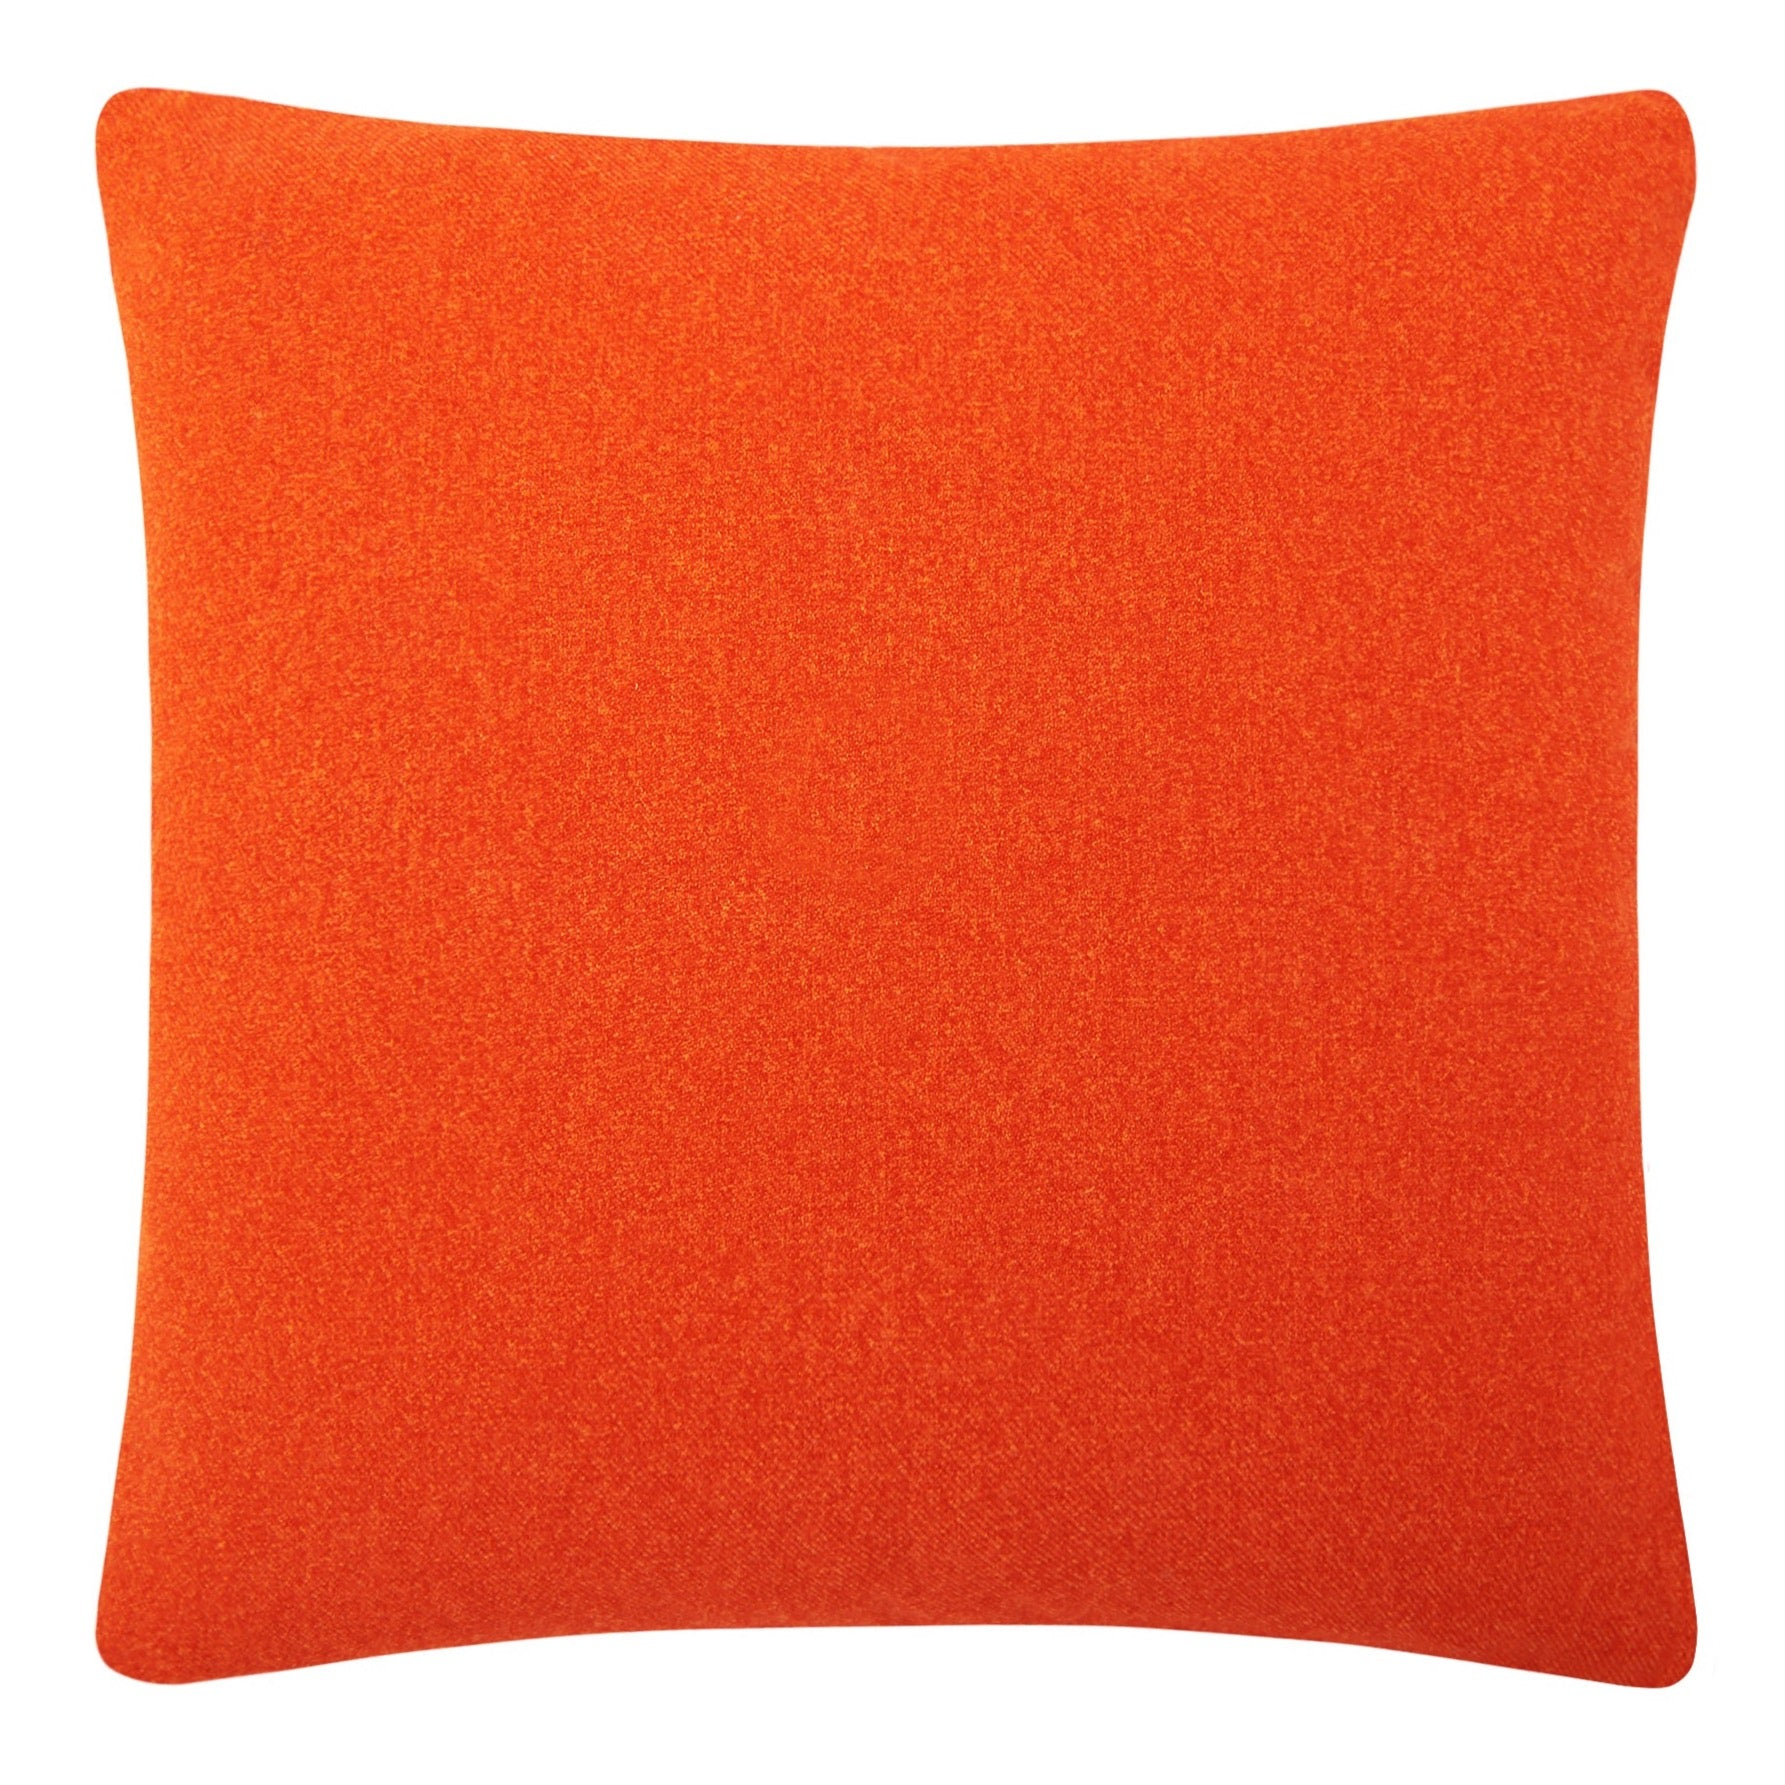 GLORIOUS ORANGE 50cm CUSHION